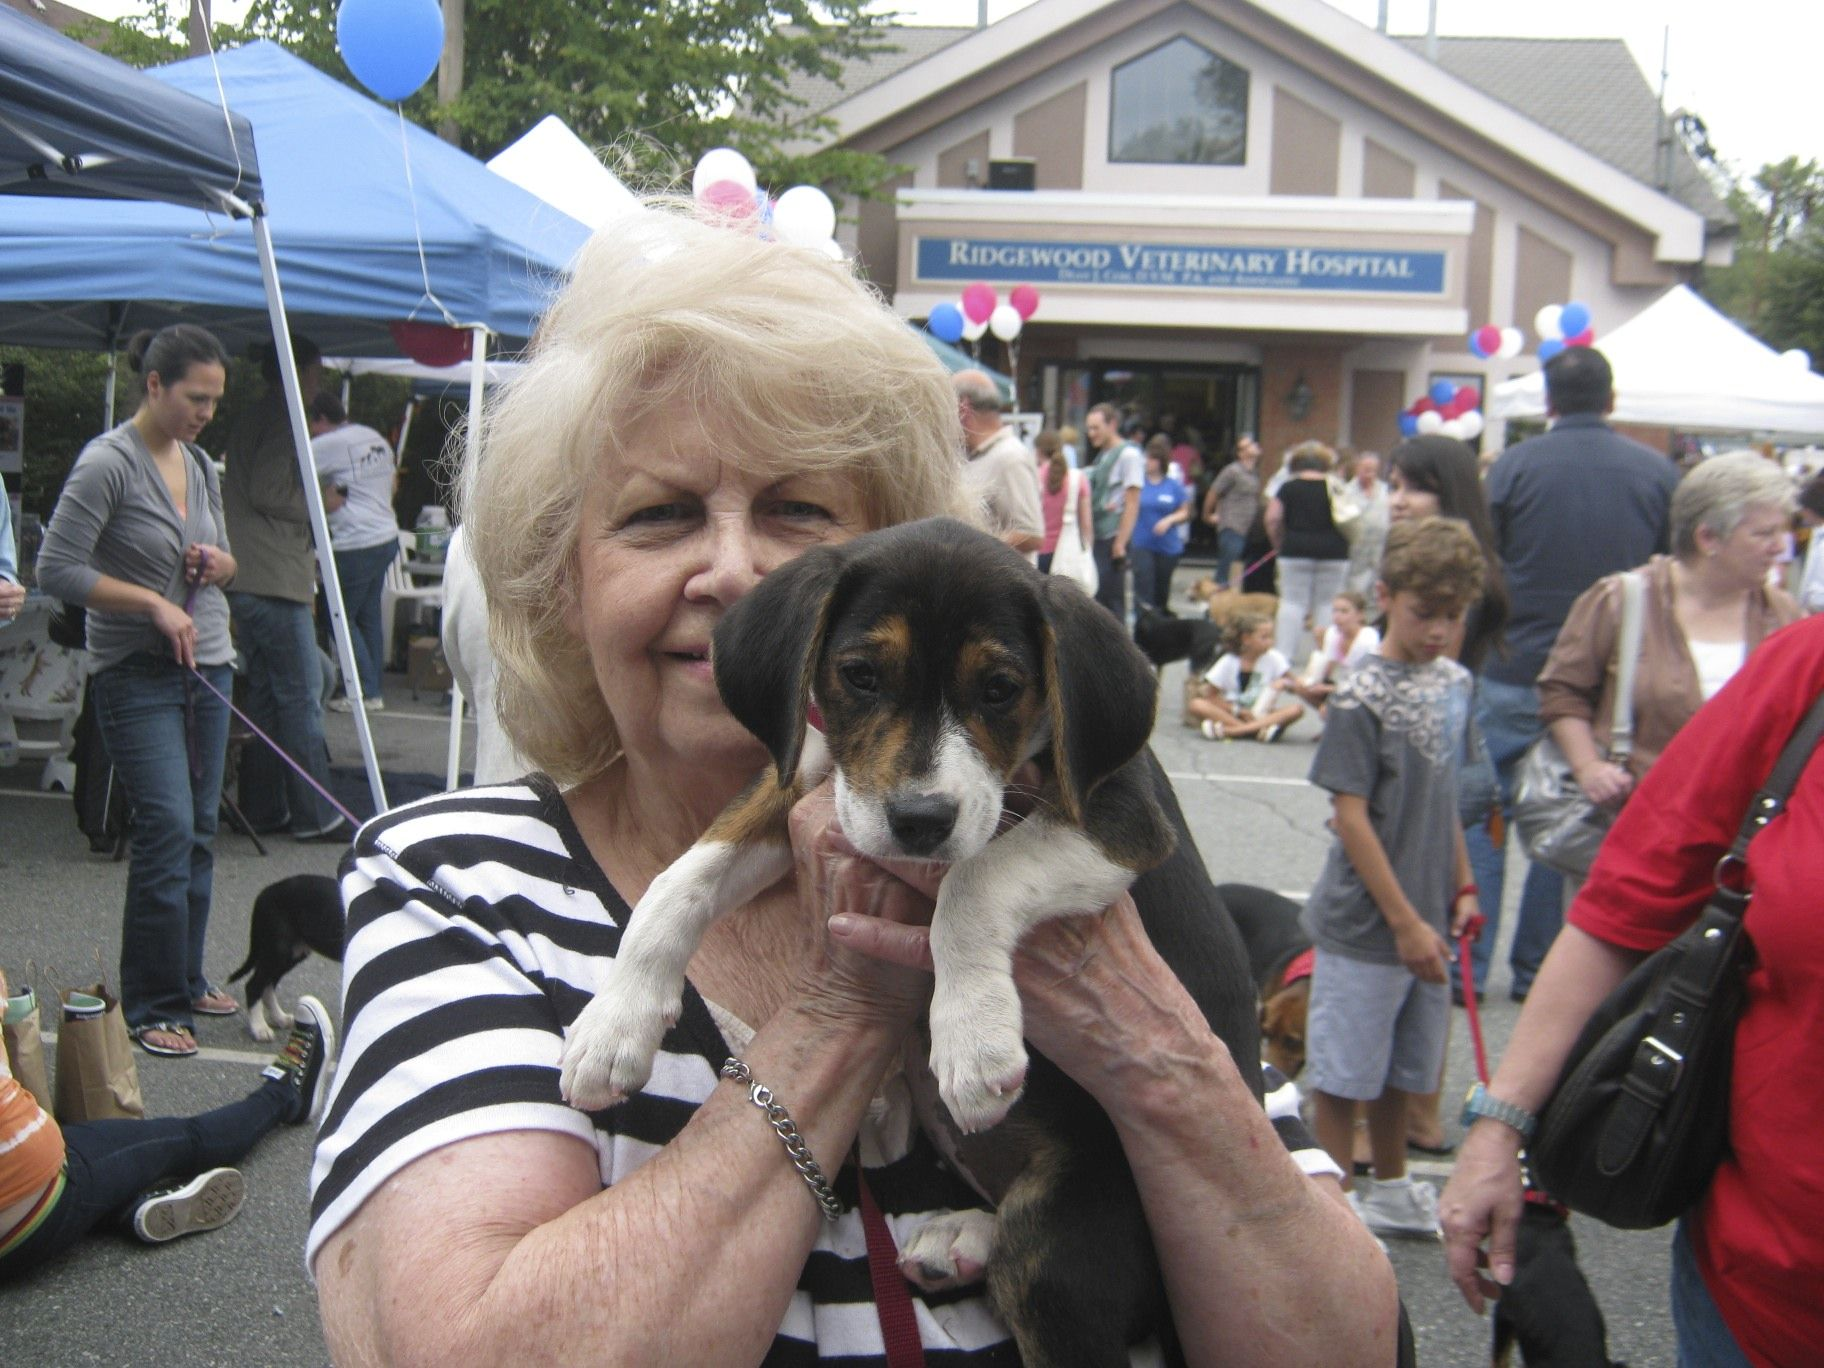 A New Best Friend Adopted At Ridgewood Veterinary Hospital S Adopt A Pet Day Pet Day Veterinary Hospital Pets